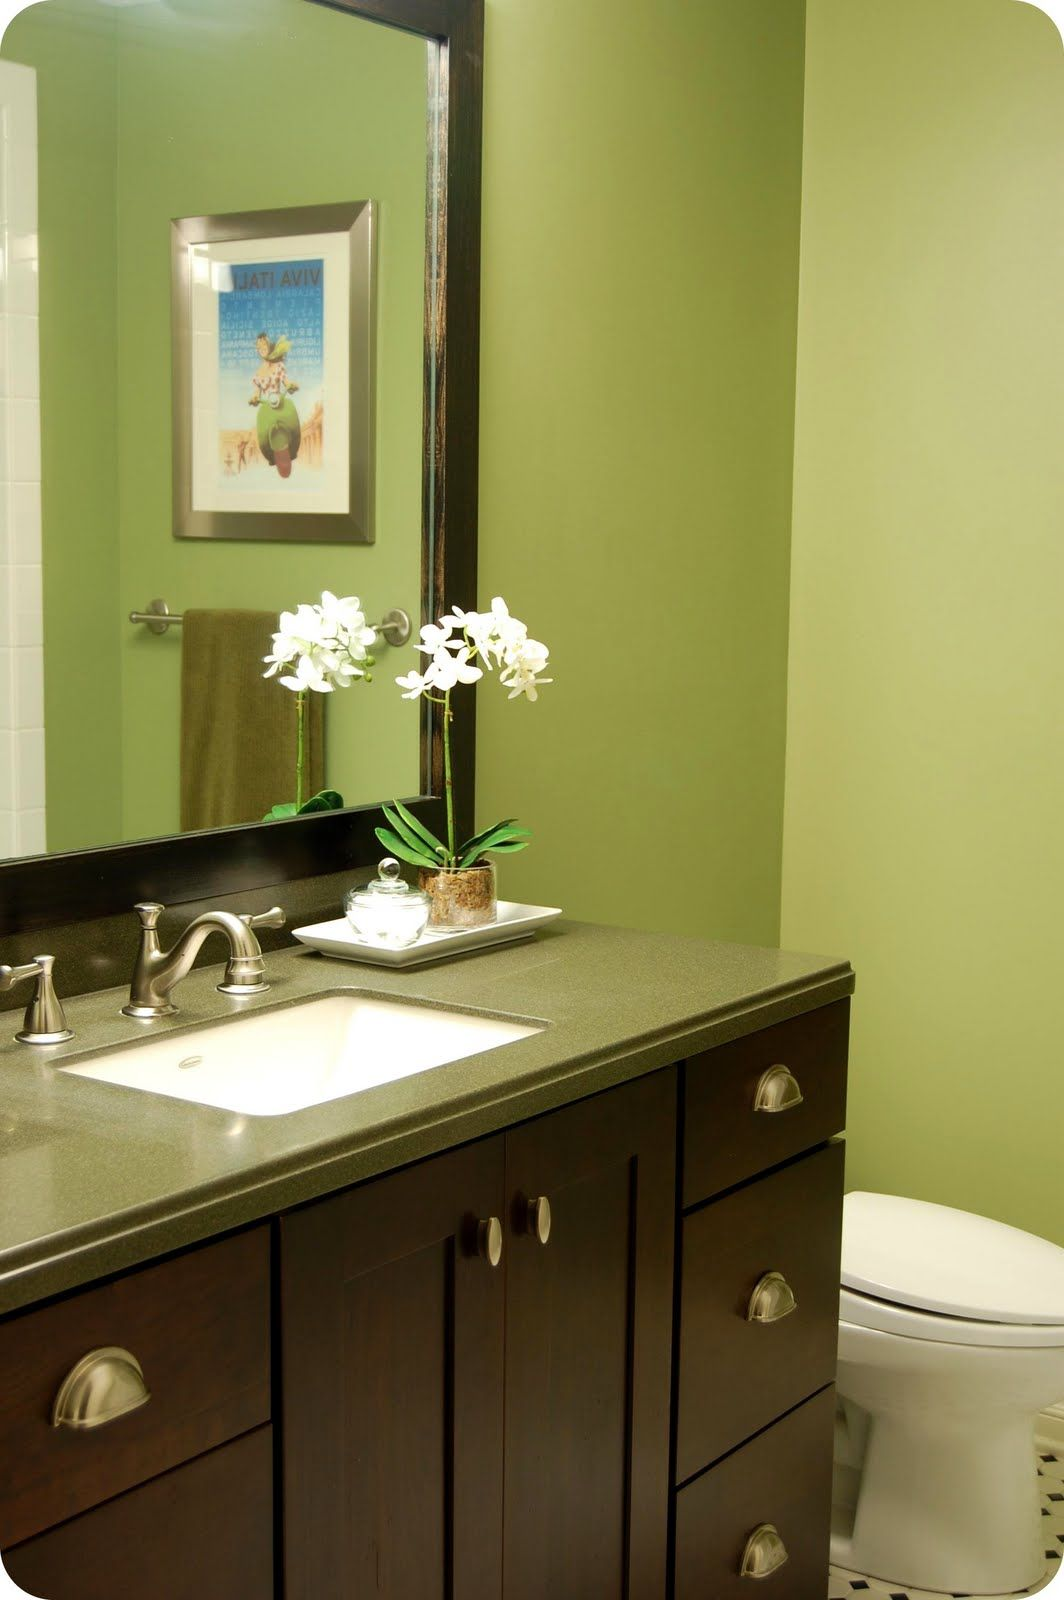 Benjamin Moore - Hillside Green (wall color) | For the Home ...